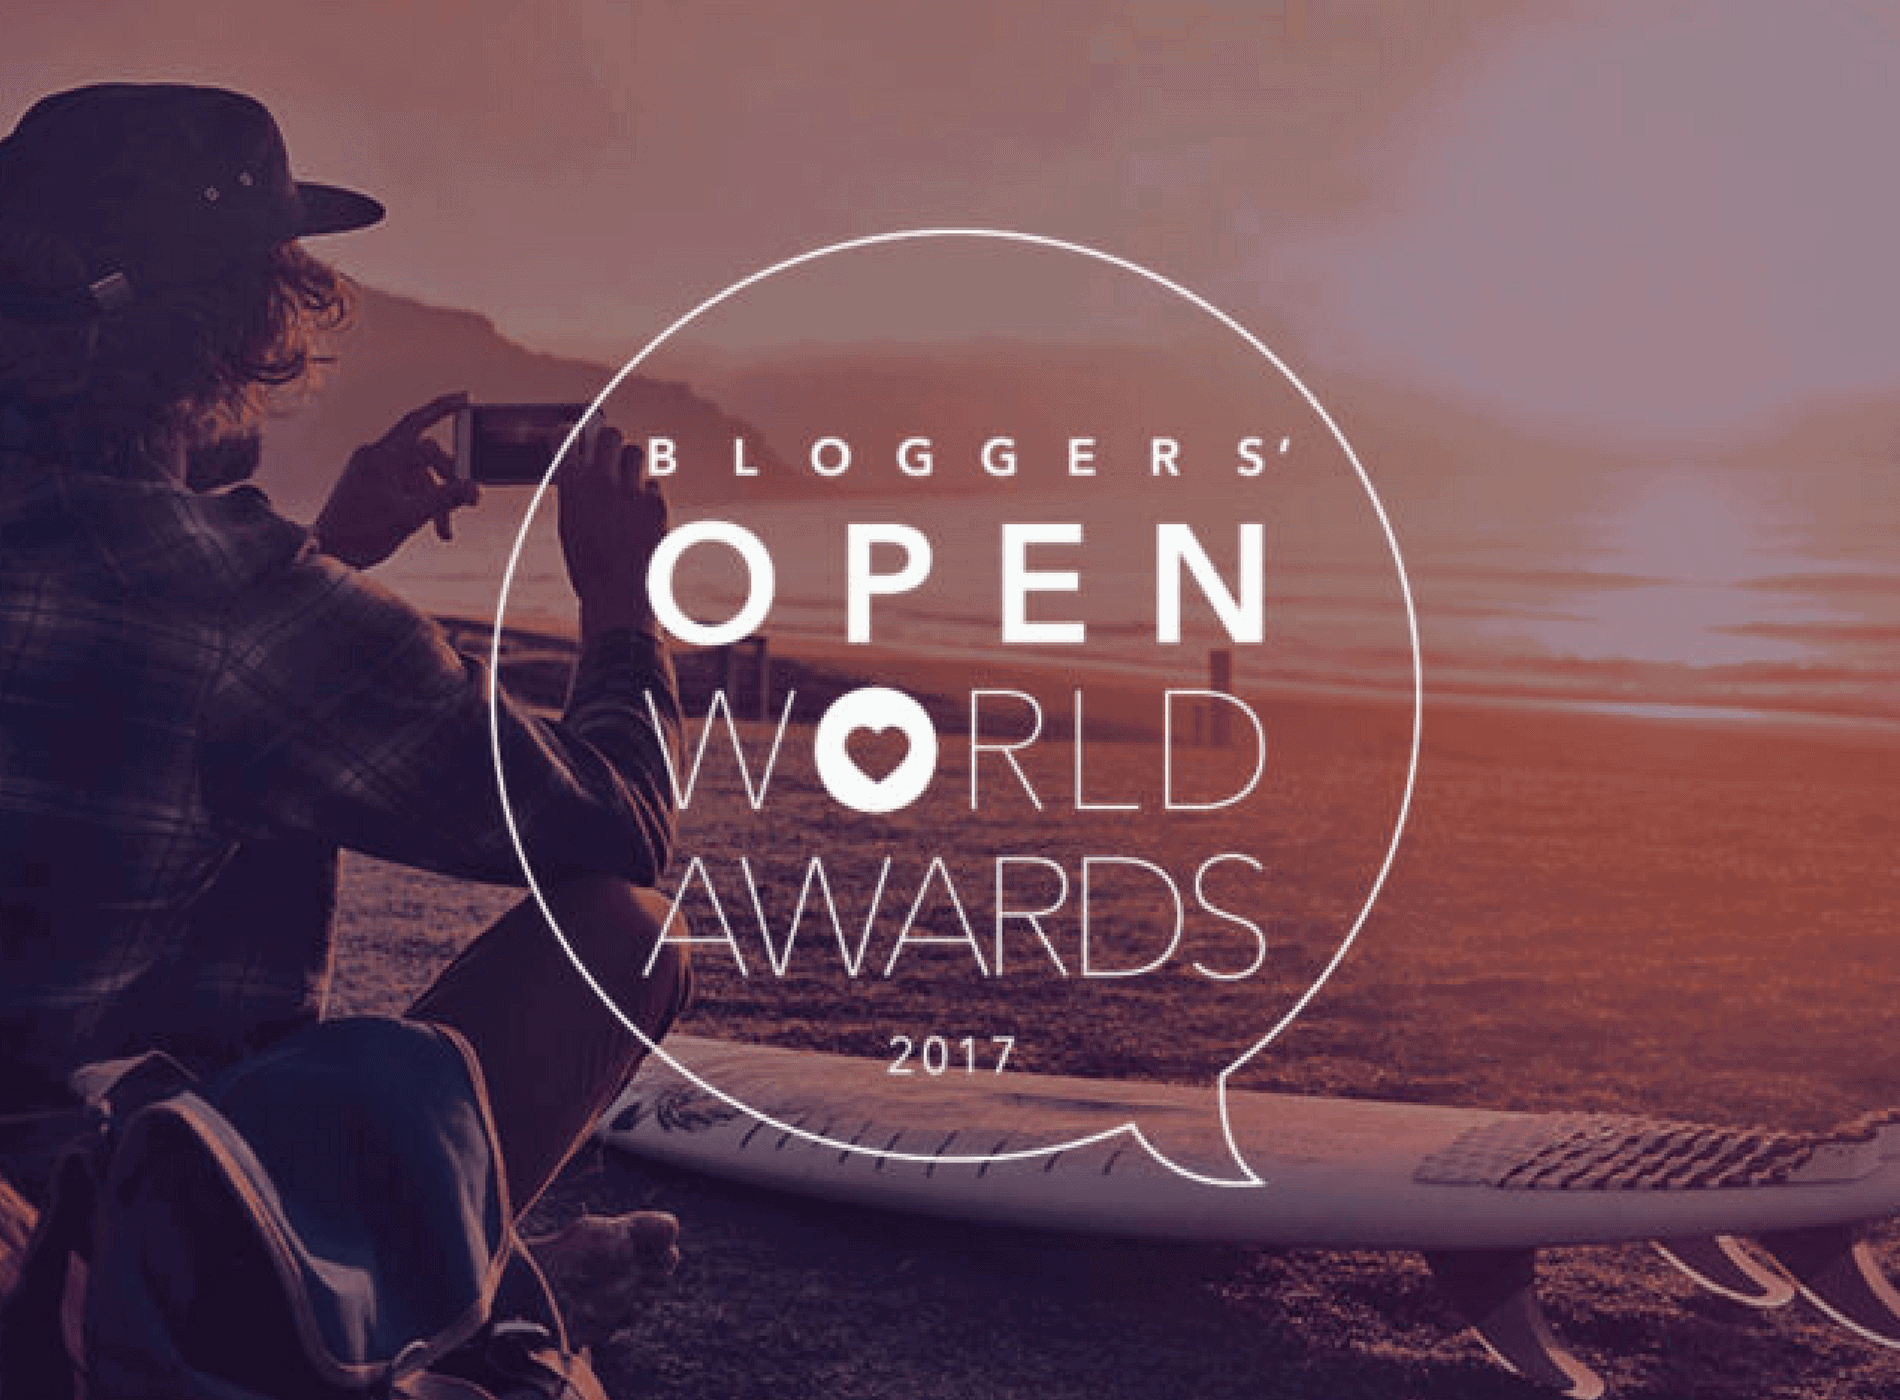 Open World Awards